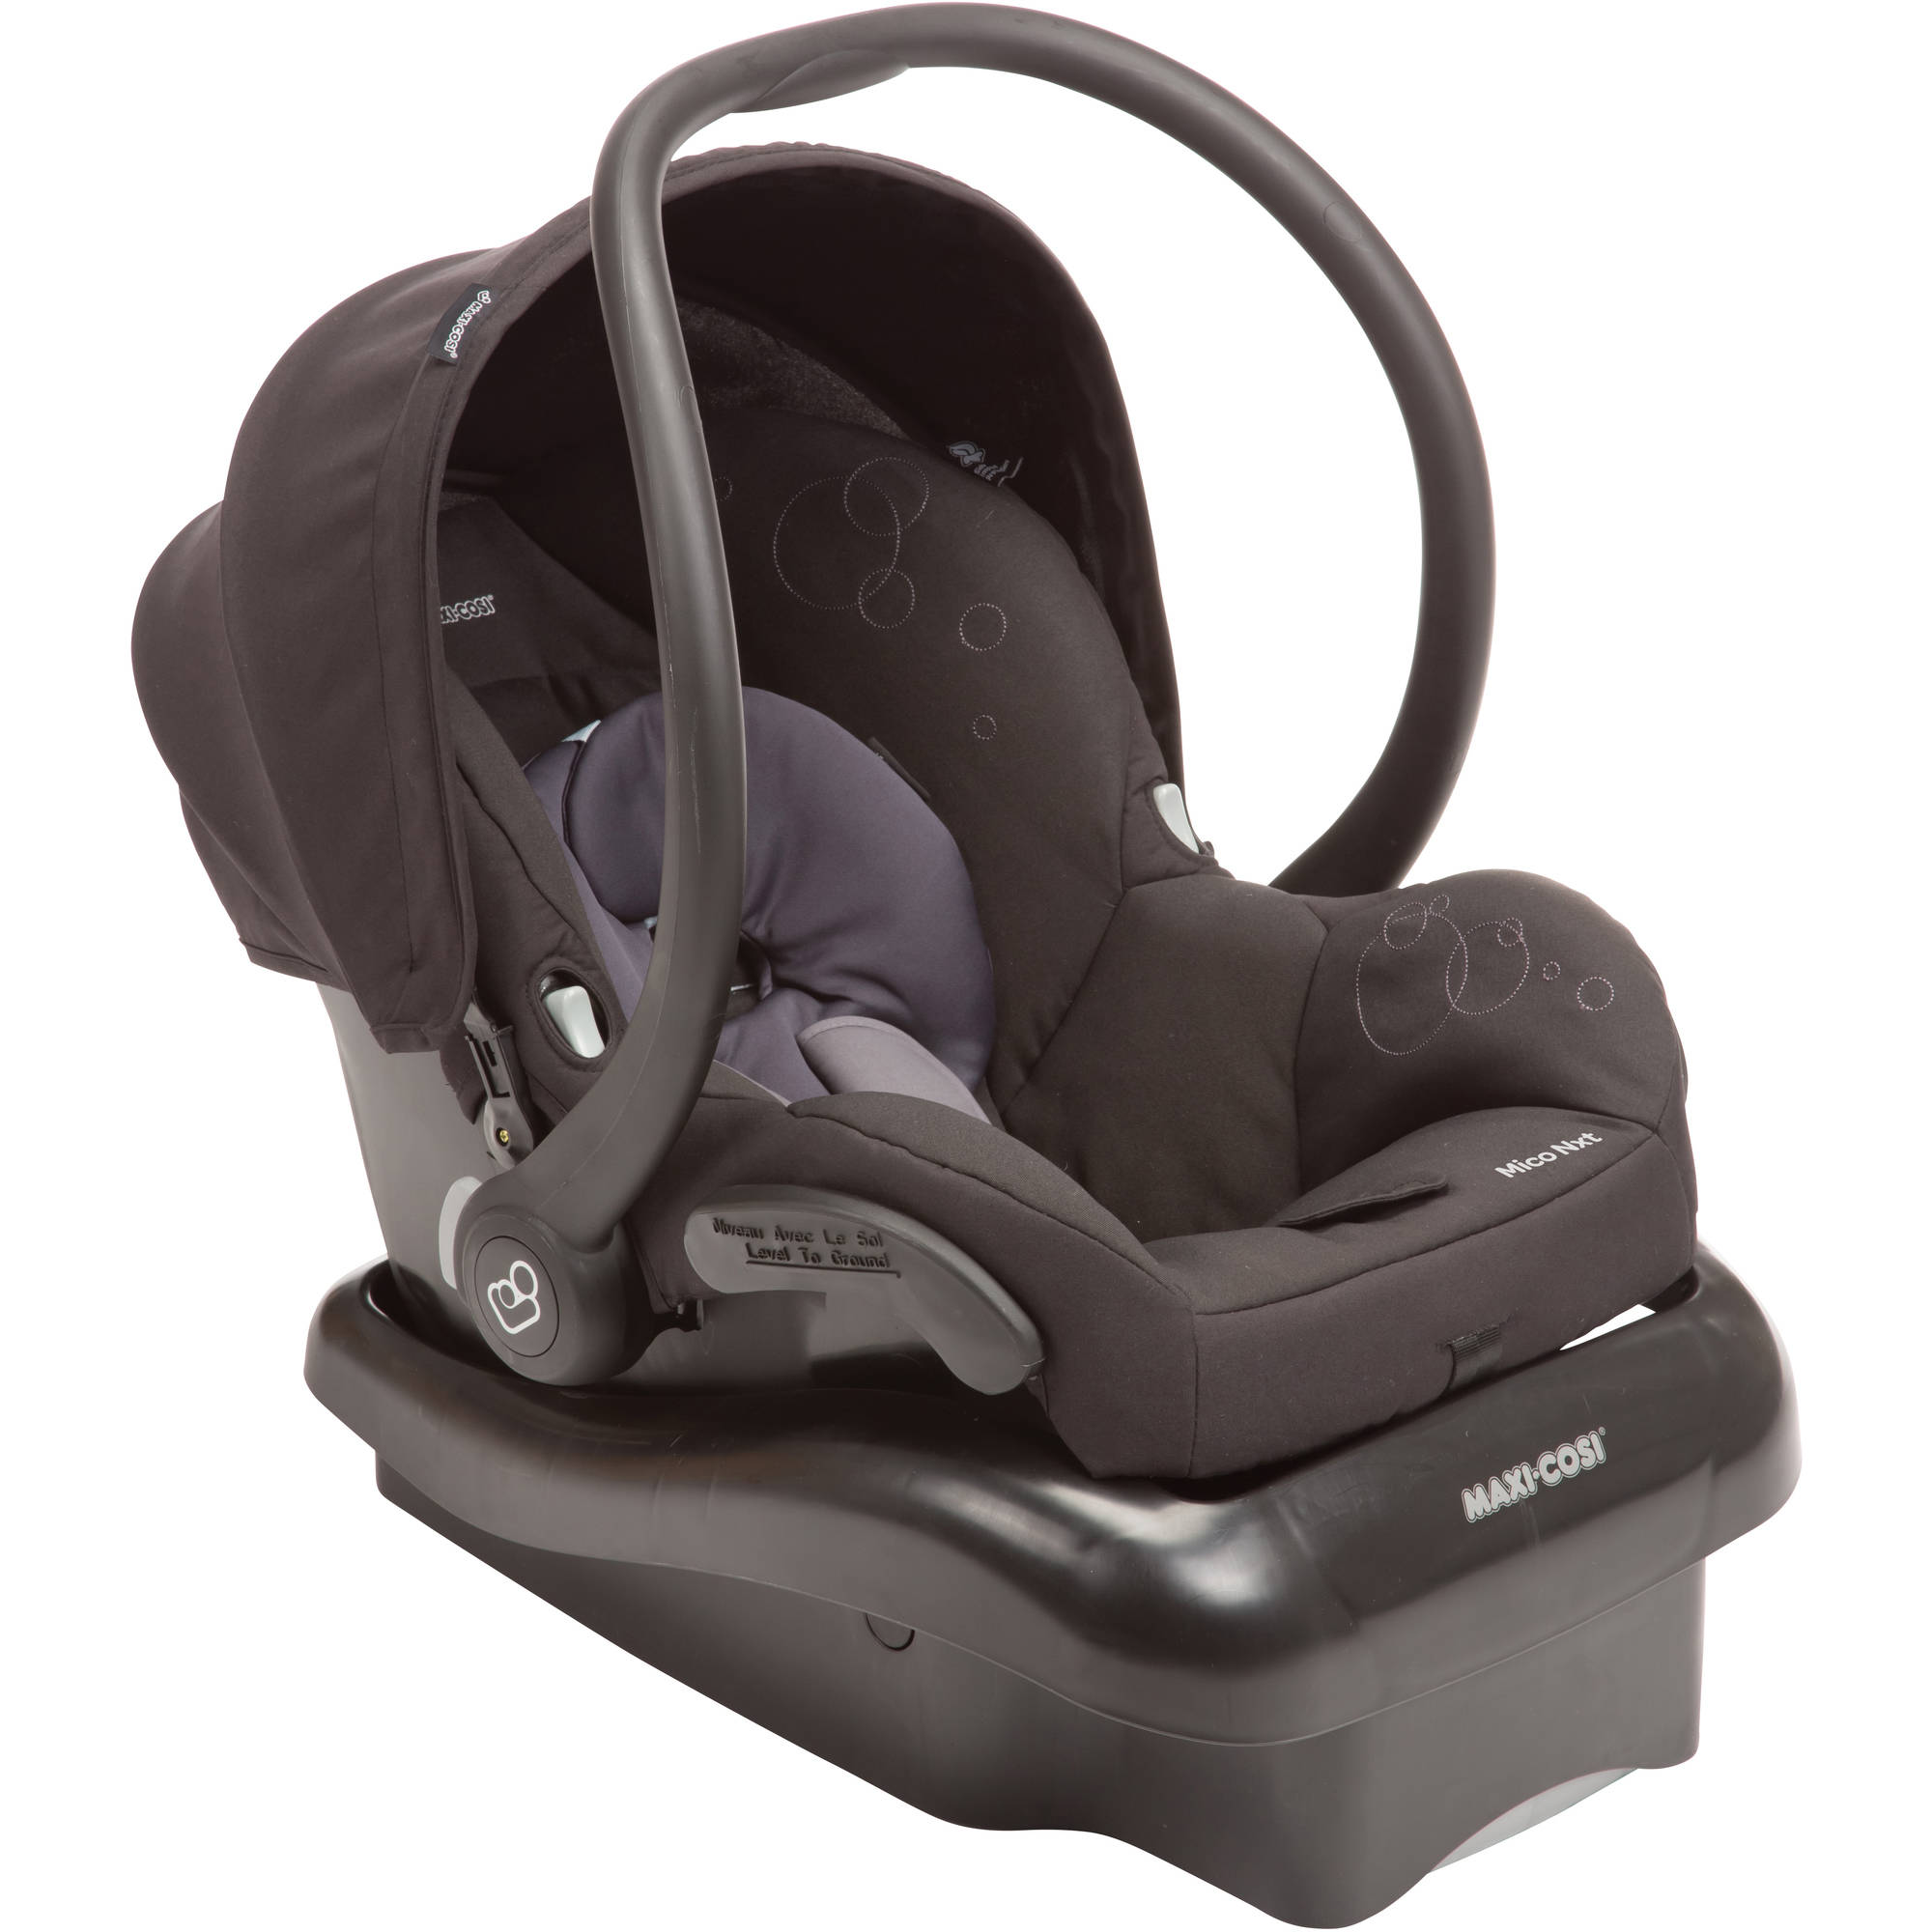 Maxi Cosi Mico Nxt Infant Car Seat Choose Your Color